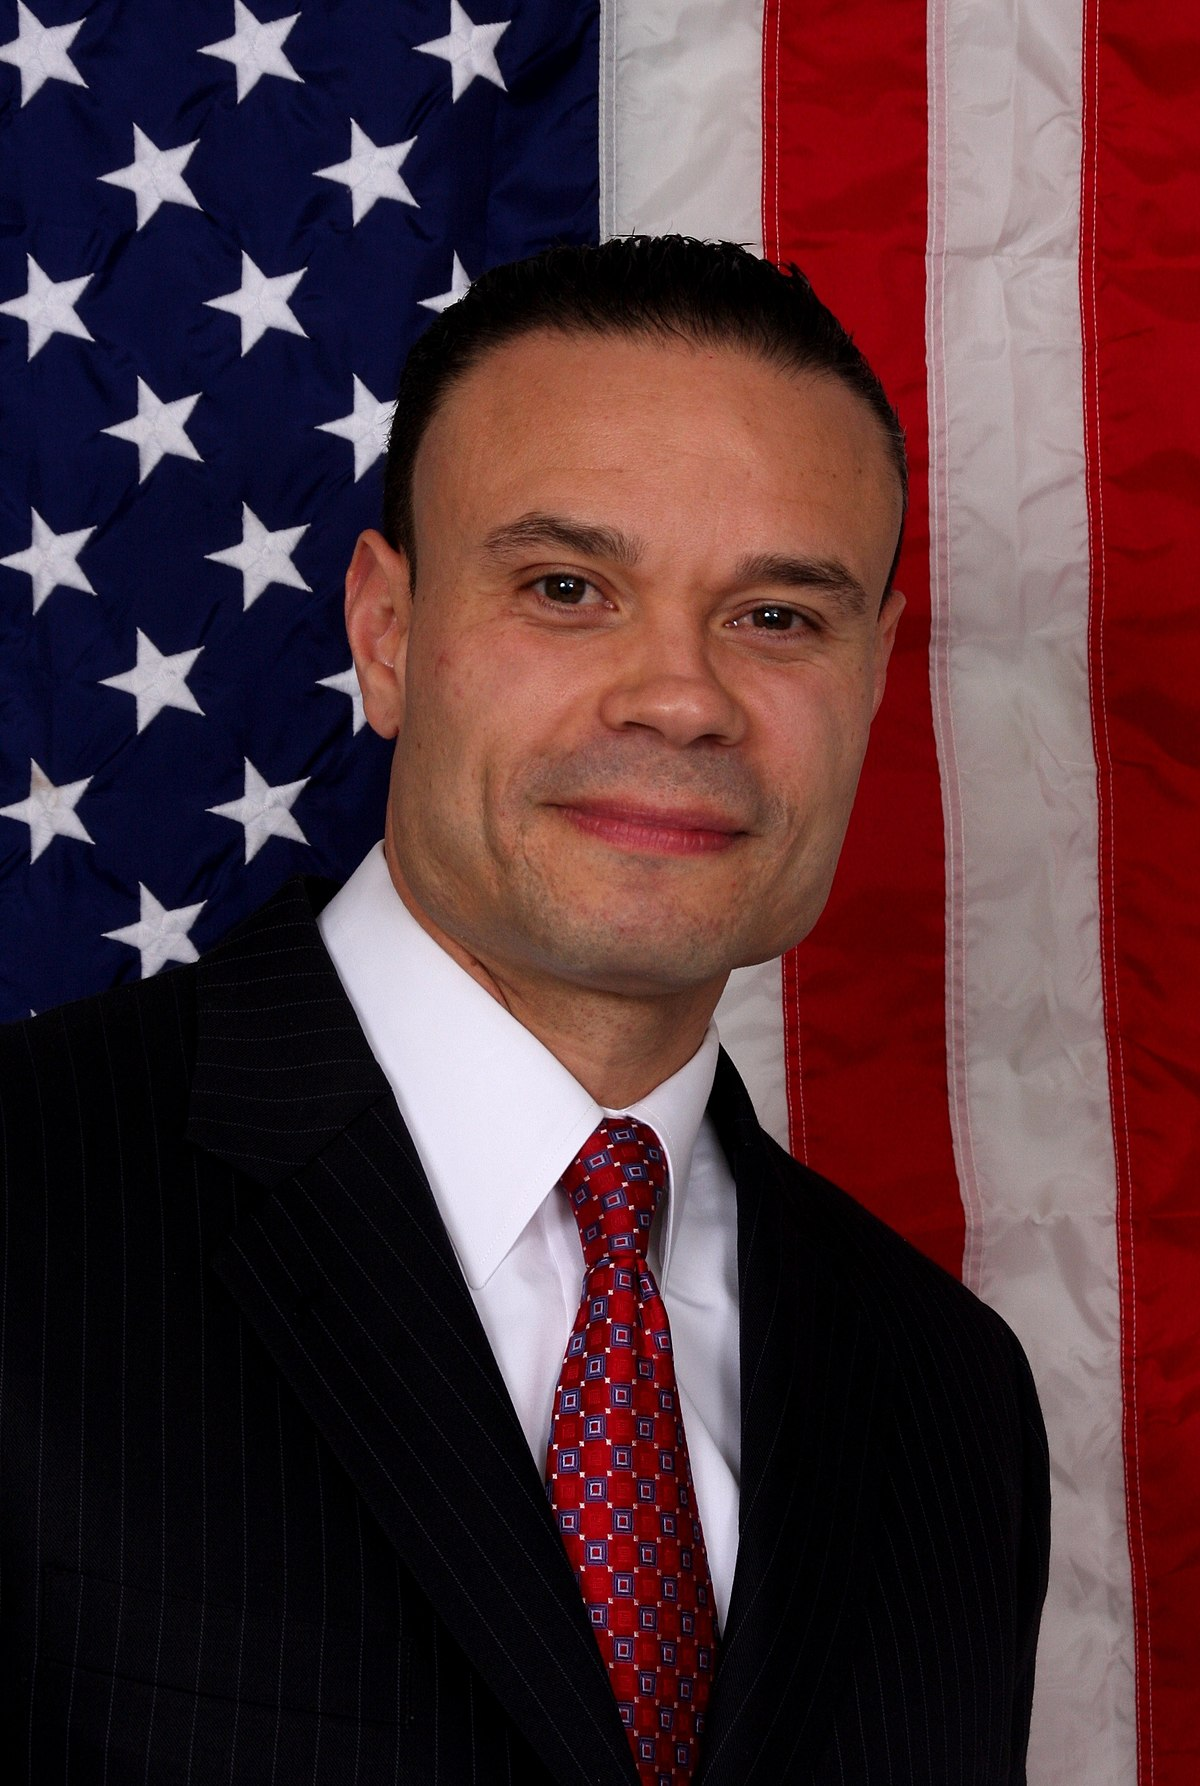 Ep. 947 Is this Really About Obama Meddling in Foreign Elections? – Dan Bongino